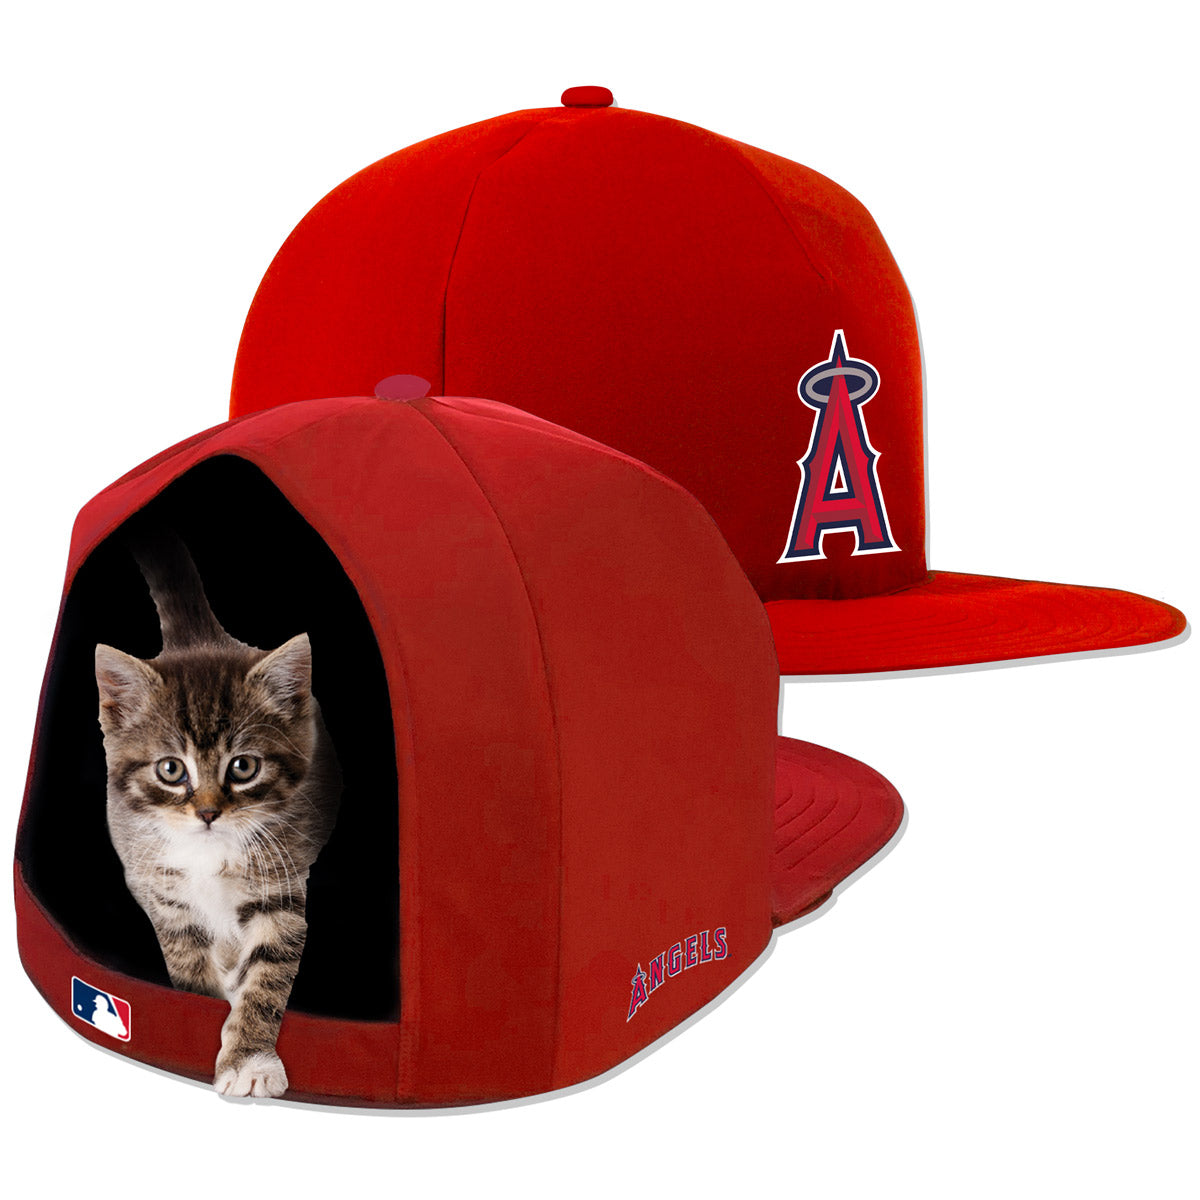 LA Angels Nap Cap Plush Dog Bed